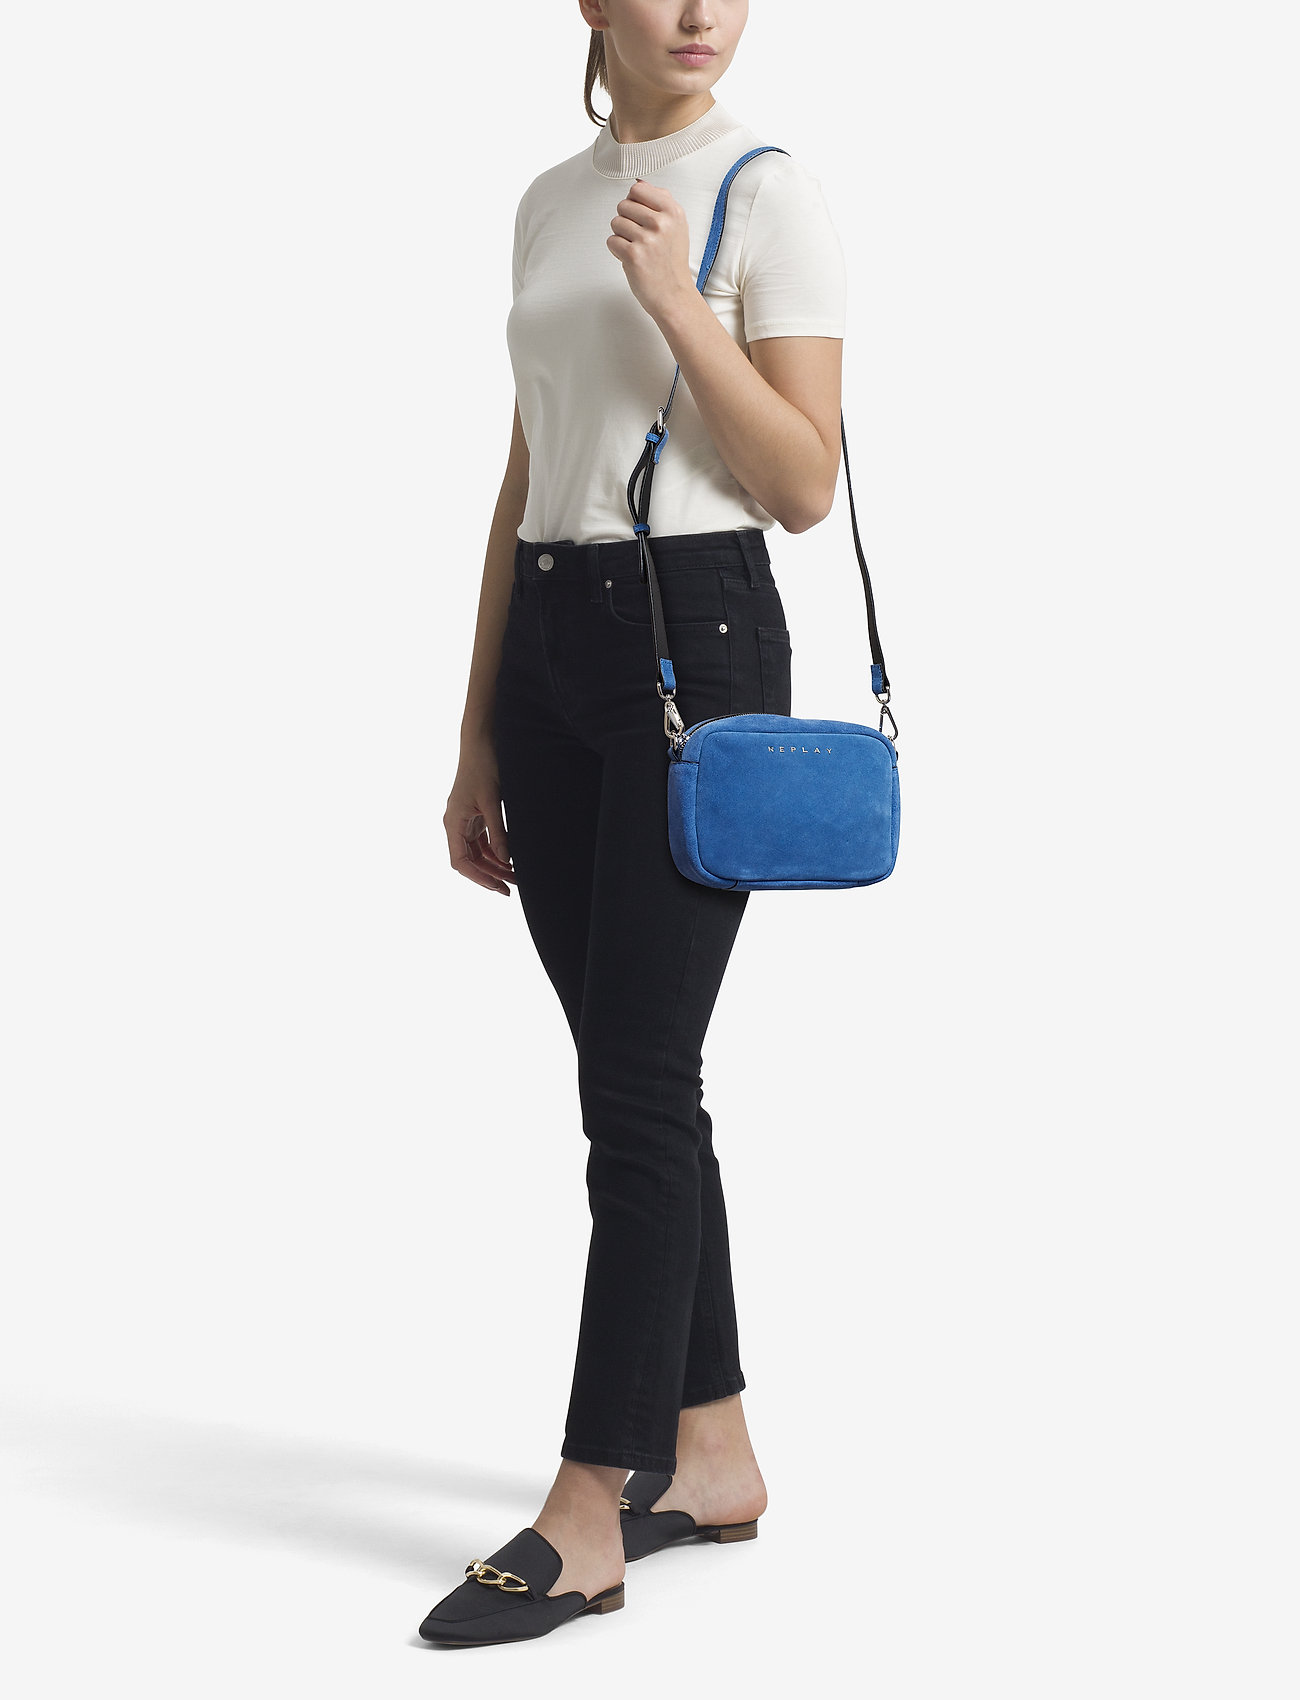 Replay Bag - ELECTRIC BLUE